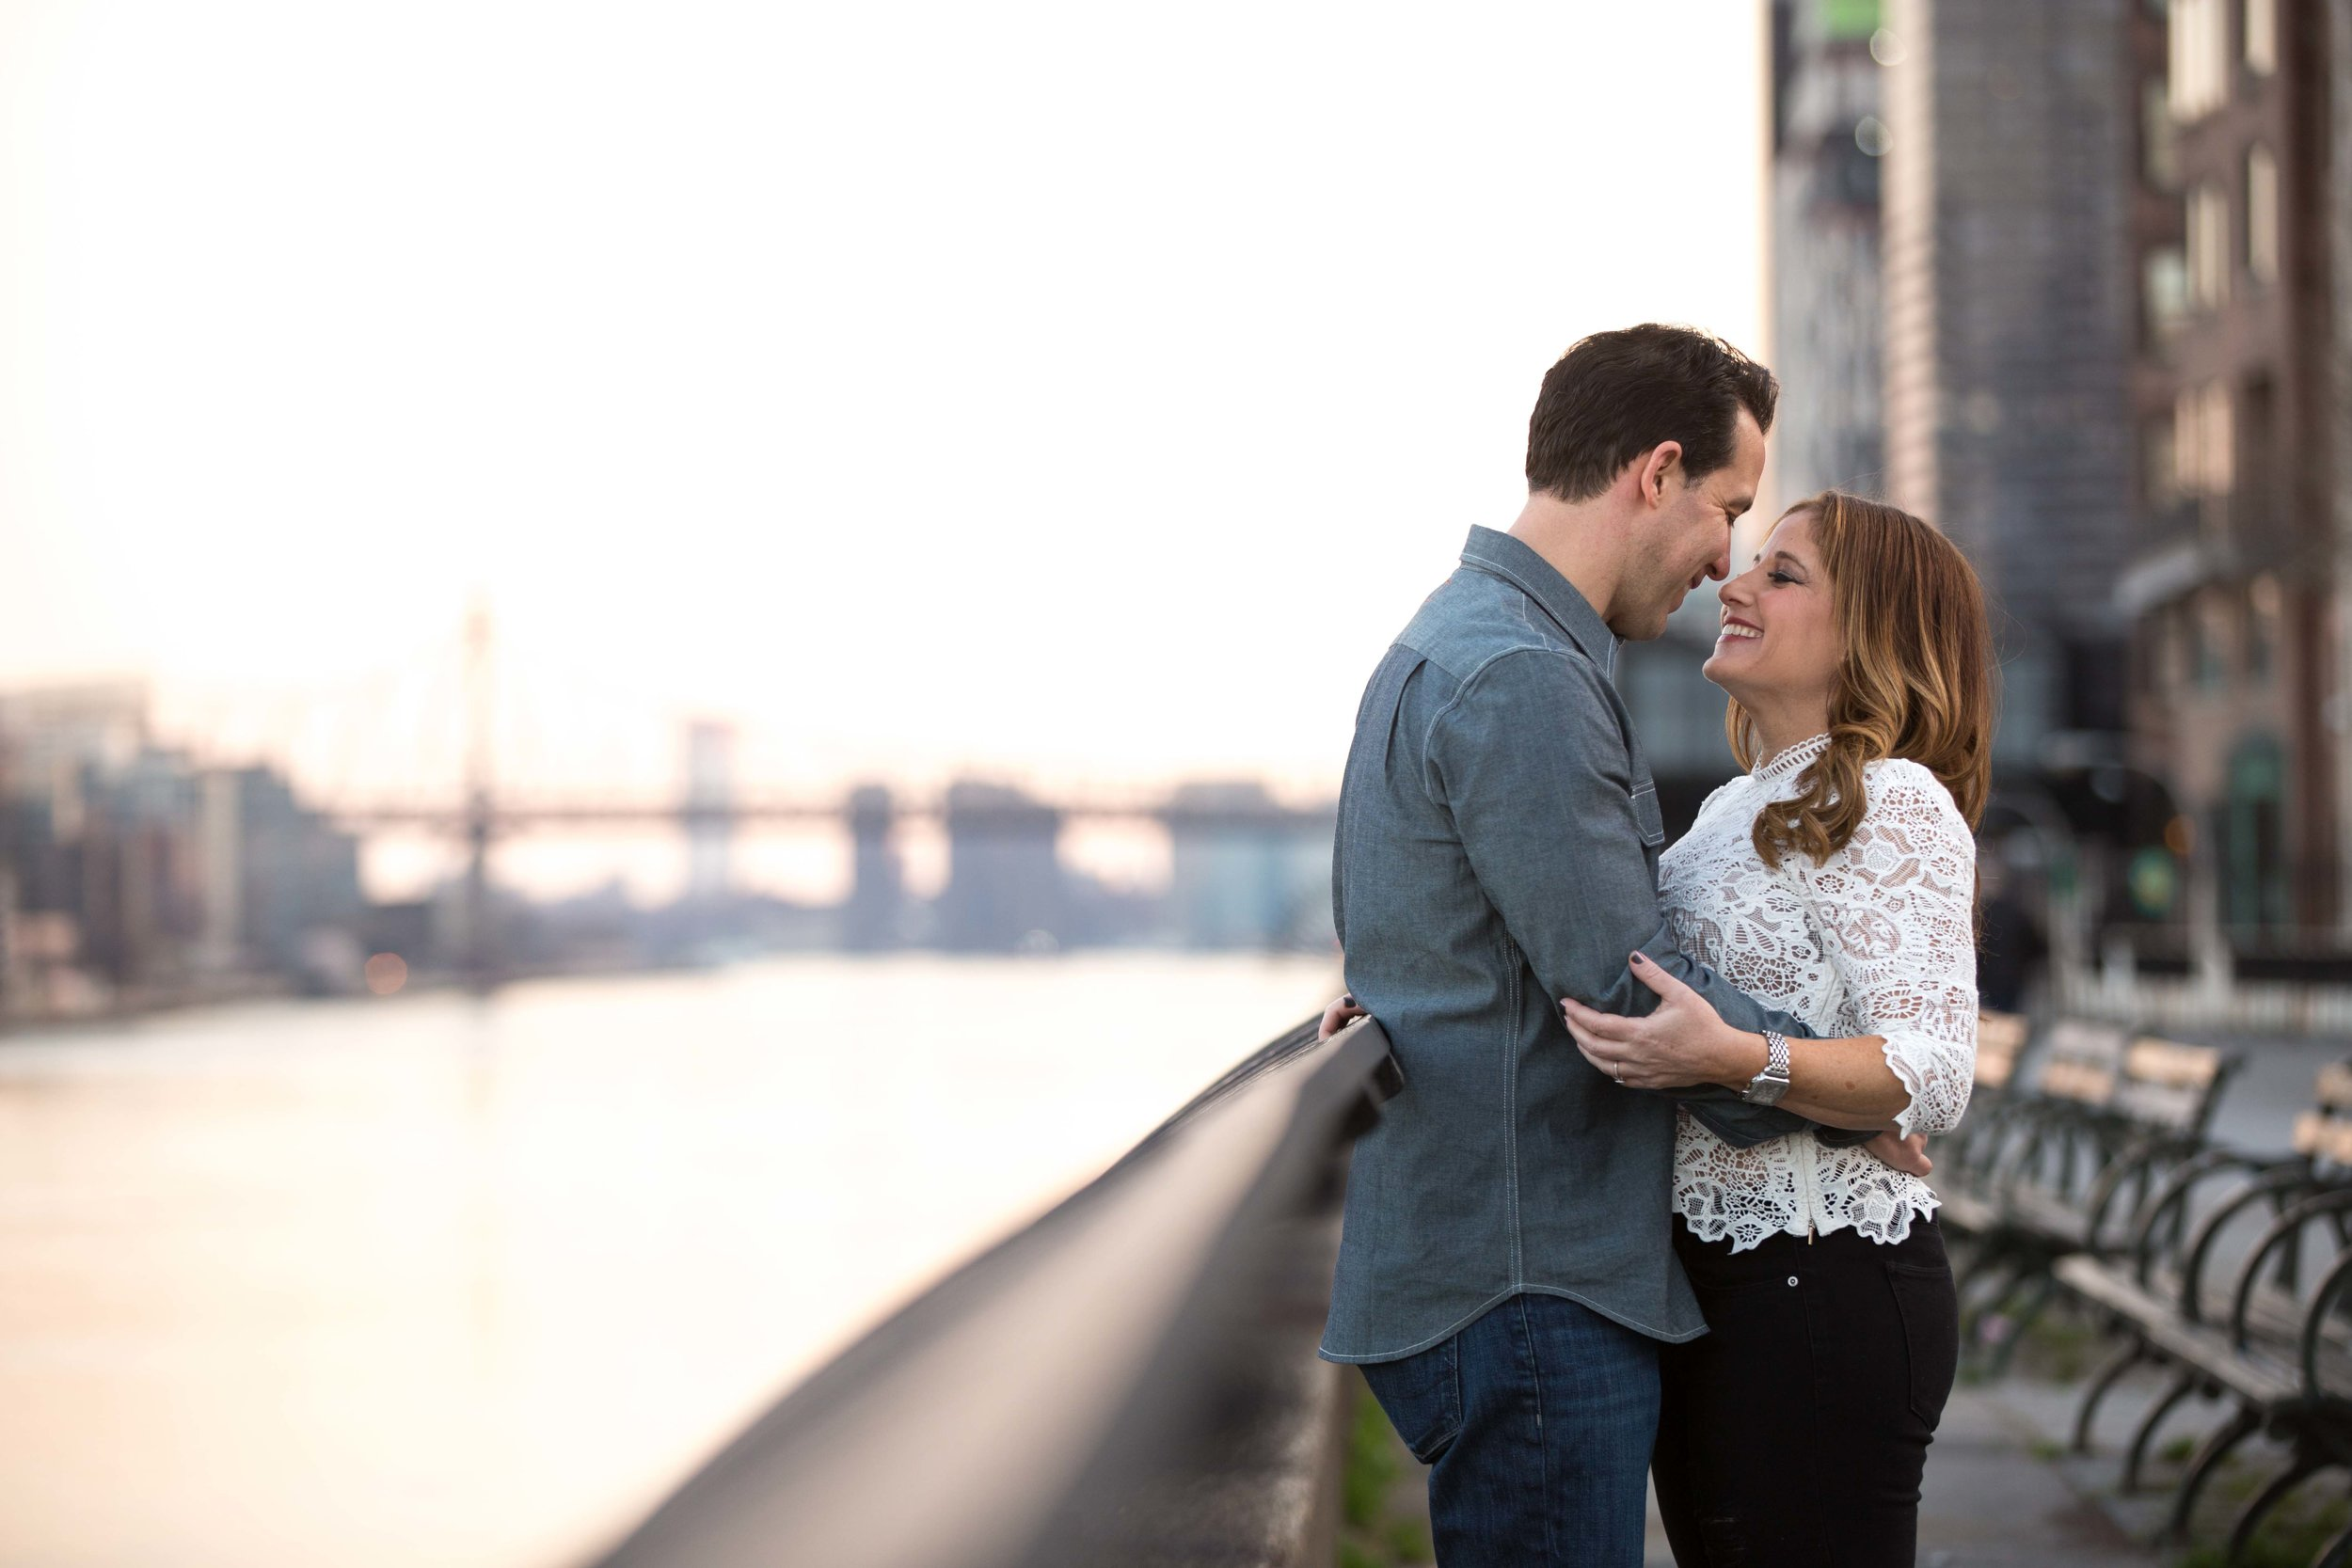 NYC Carl Schurz Park Engagement Photo Shoot Session 4.jpg